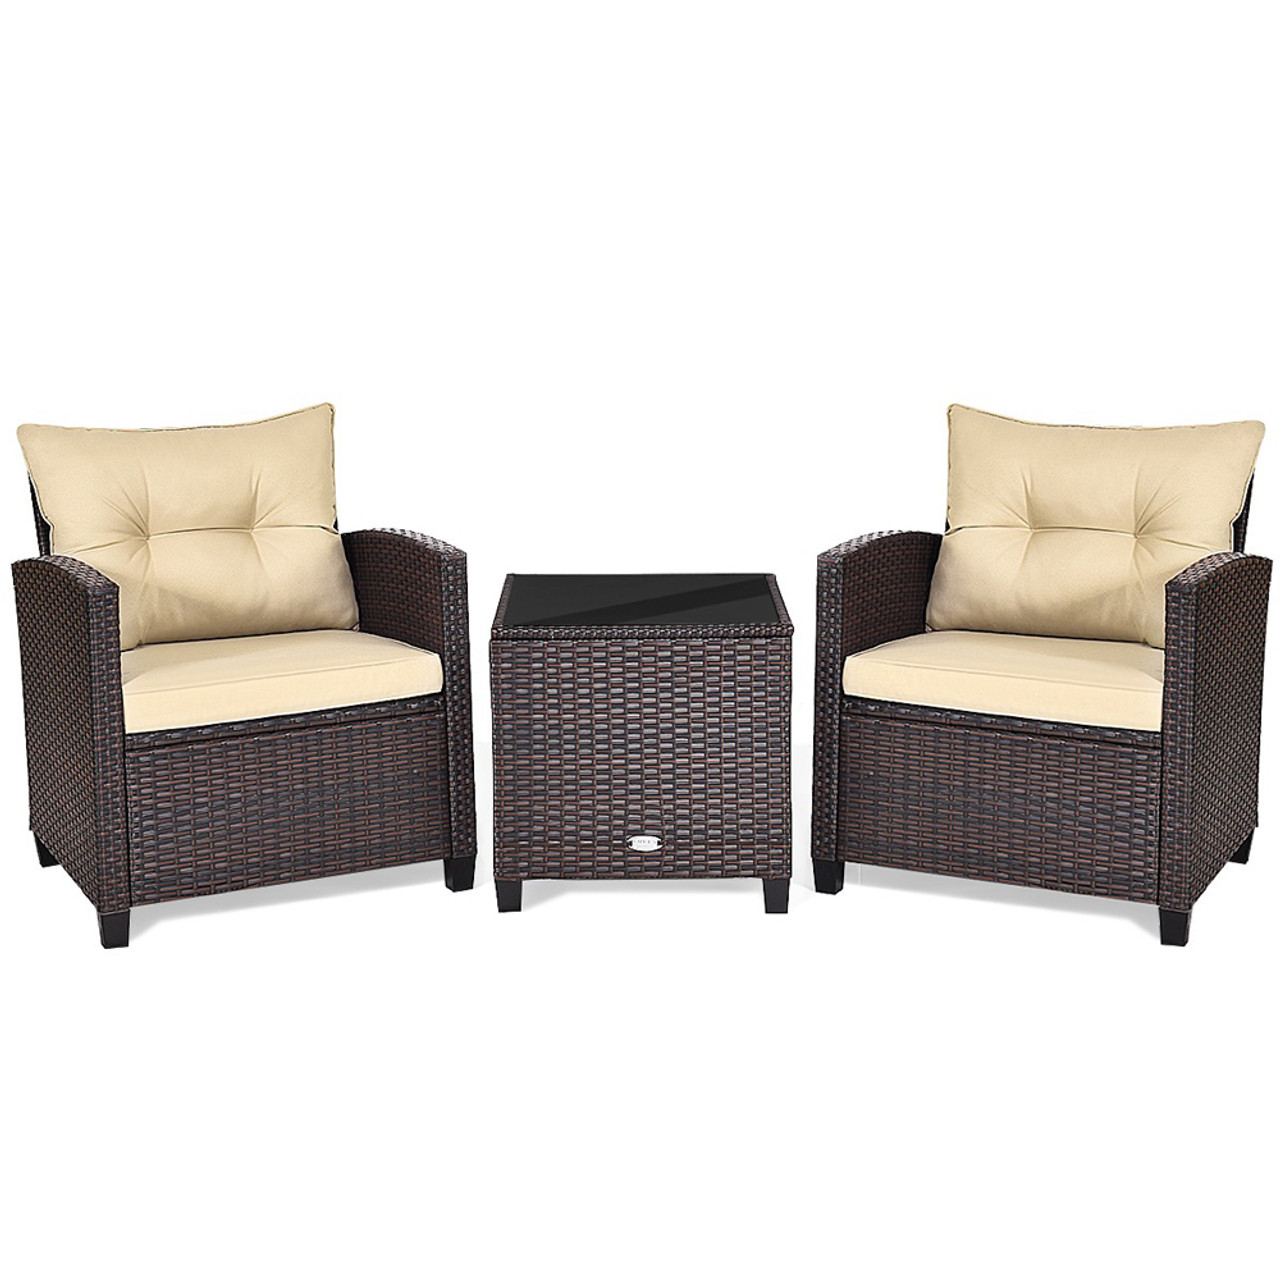 3-Piece Rattan Patio Furniture Set with Large Cushions! 9.99 (REG 9.99) + Free Shipping at Until Gone!